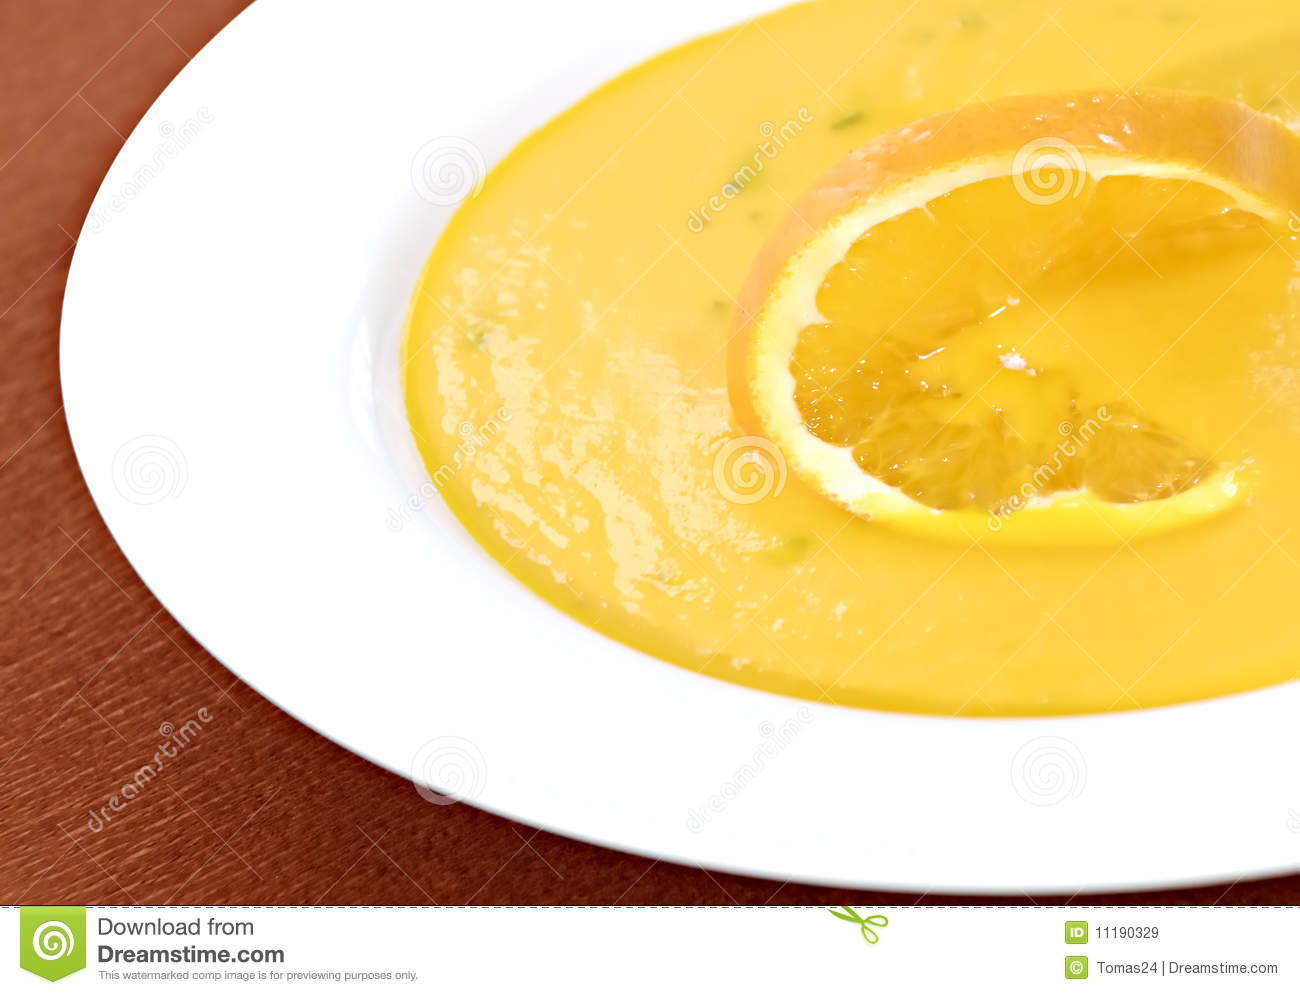 Carrot And Orange Soup Royalty Free Stock Images - Image: 11190329